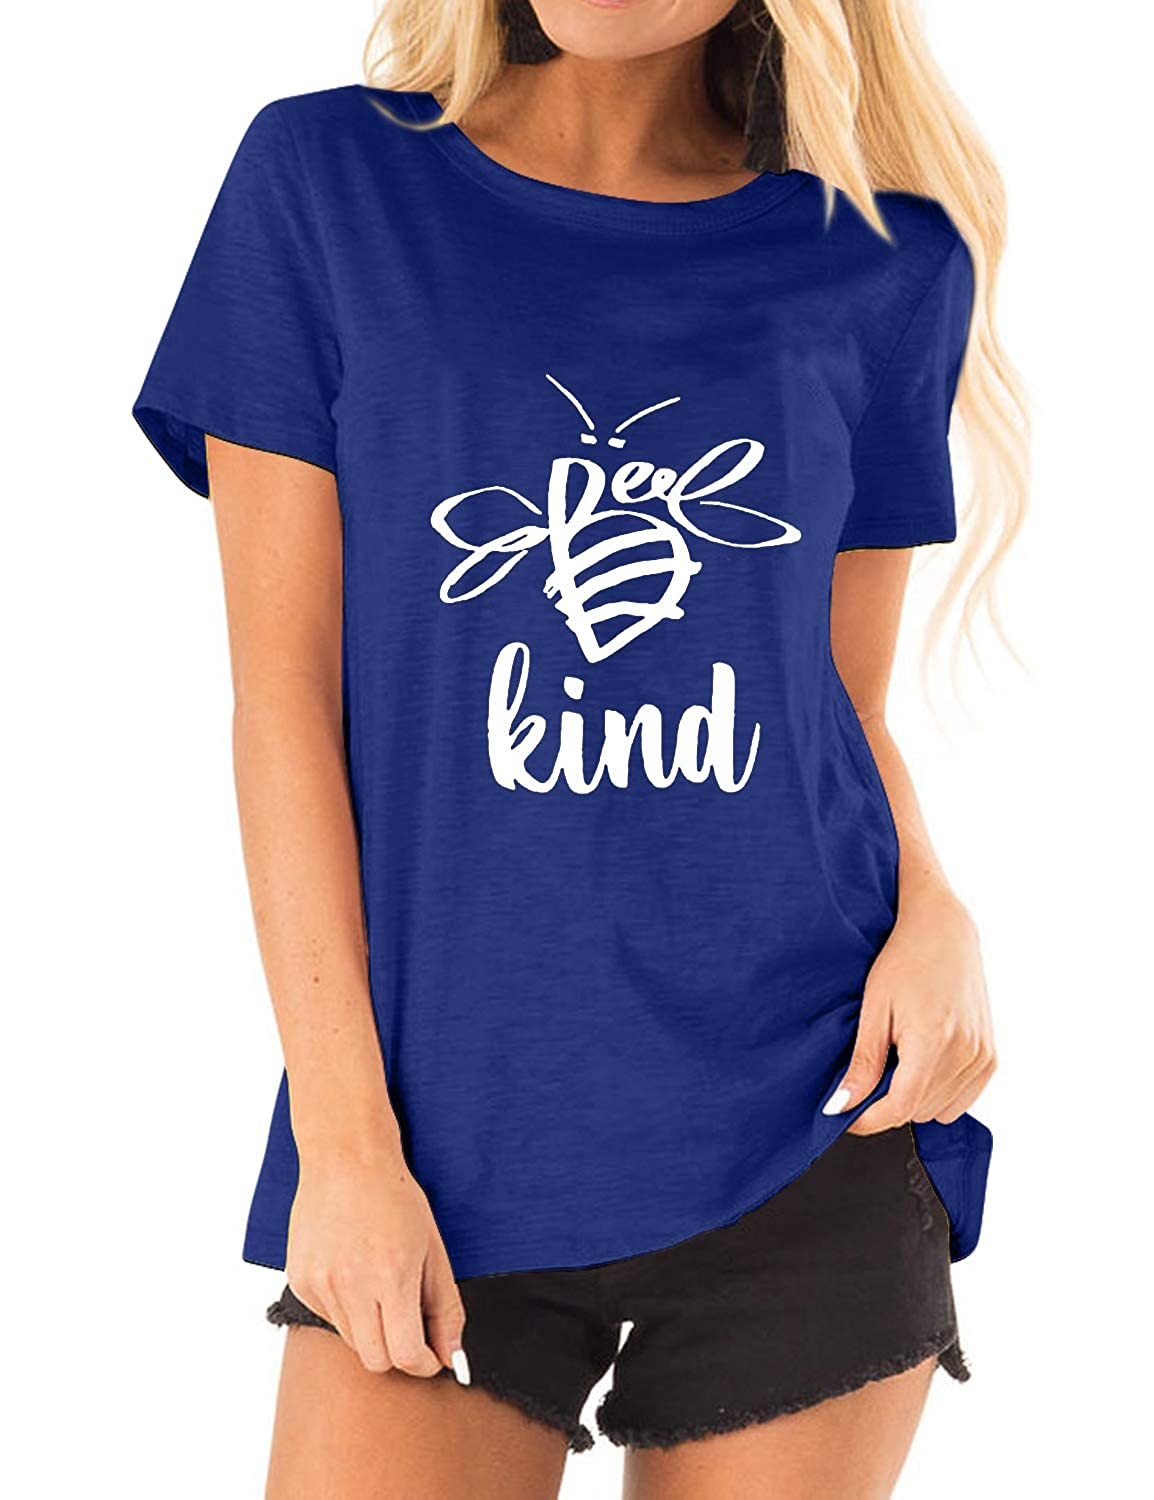 Acun Womens Be Kind Tshirt Kiss T-Shirt Bee Graphic Tee Grinch Shirt Girls Tops with Sayings